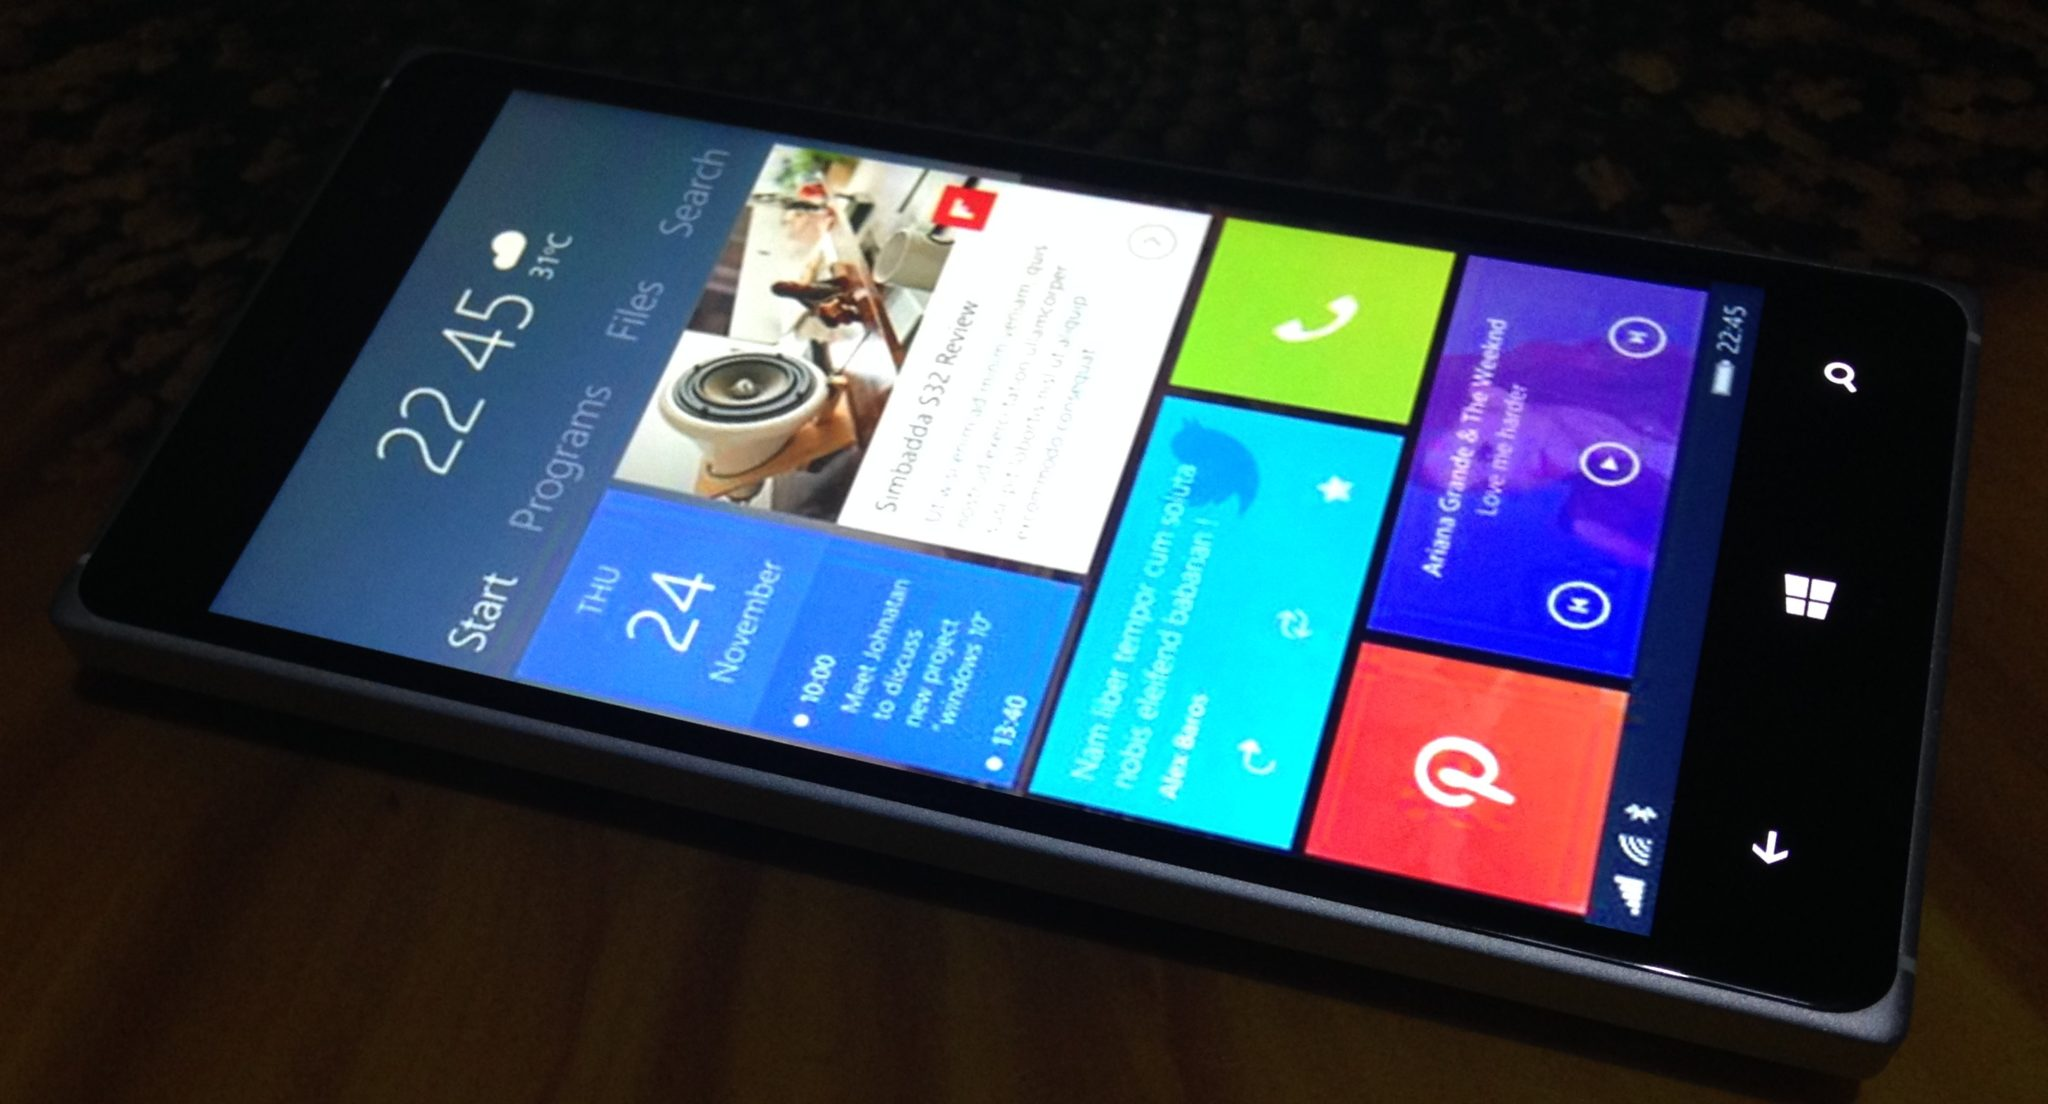 Older Windows Phone Devices To Stop Receiving Notifications Forever